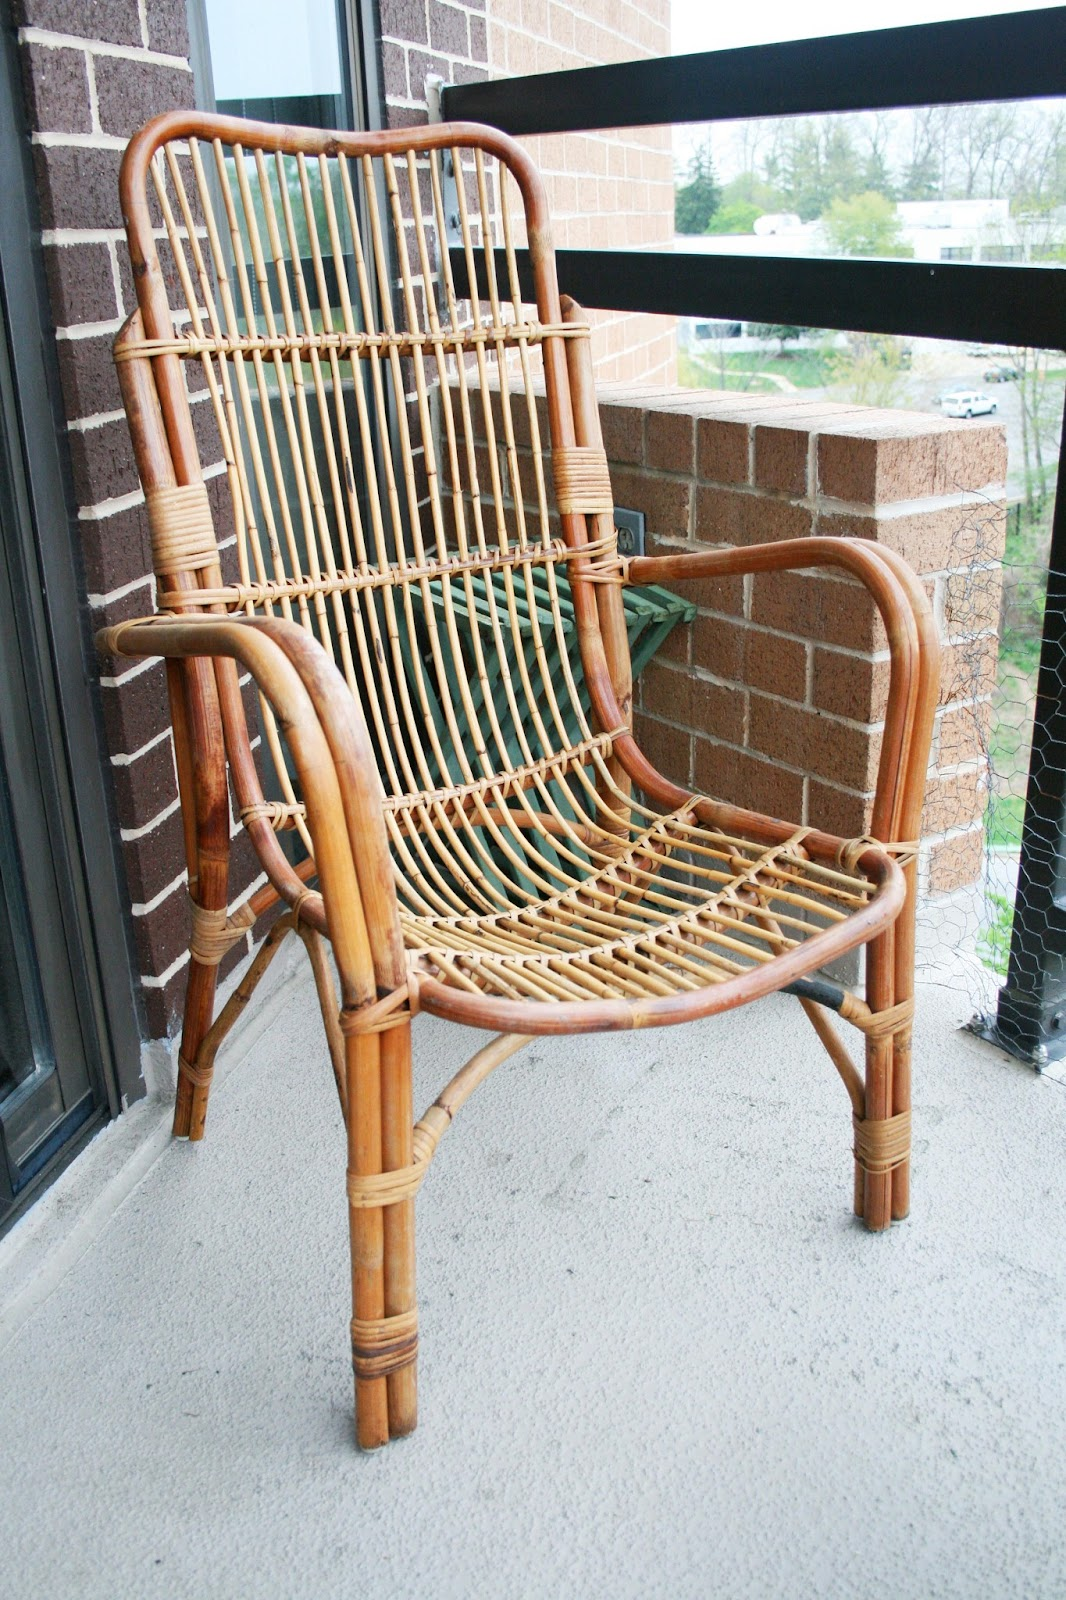 Where Can I Buy Cane For Chairs Office Chair John Lewis Fun Find Rattan